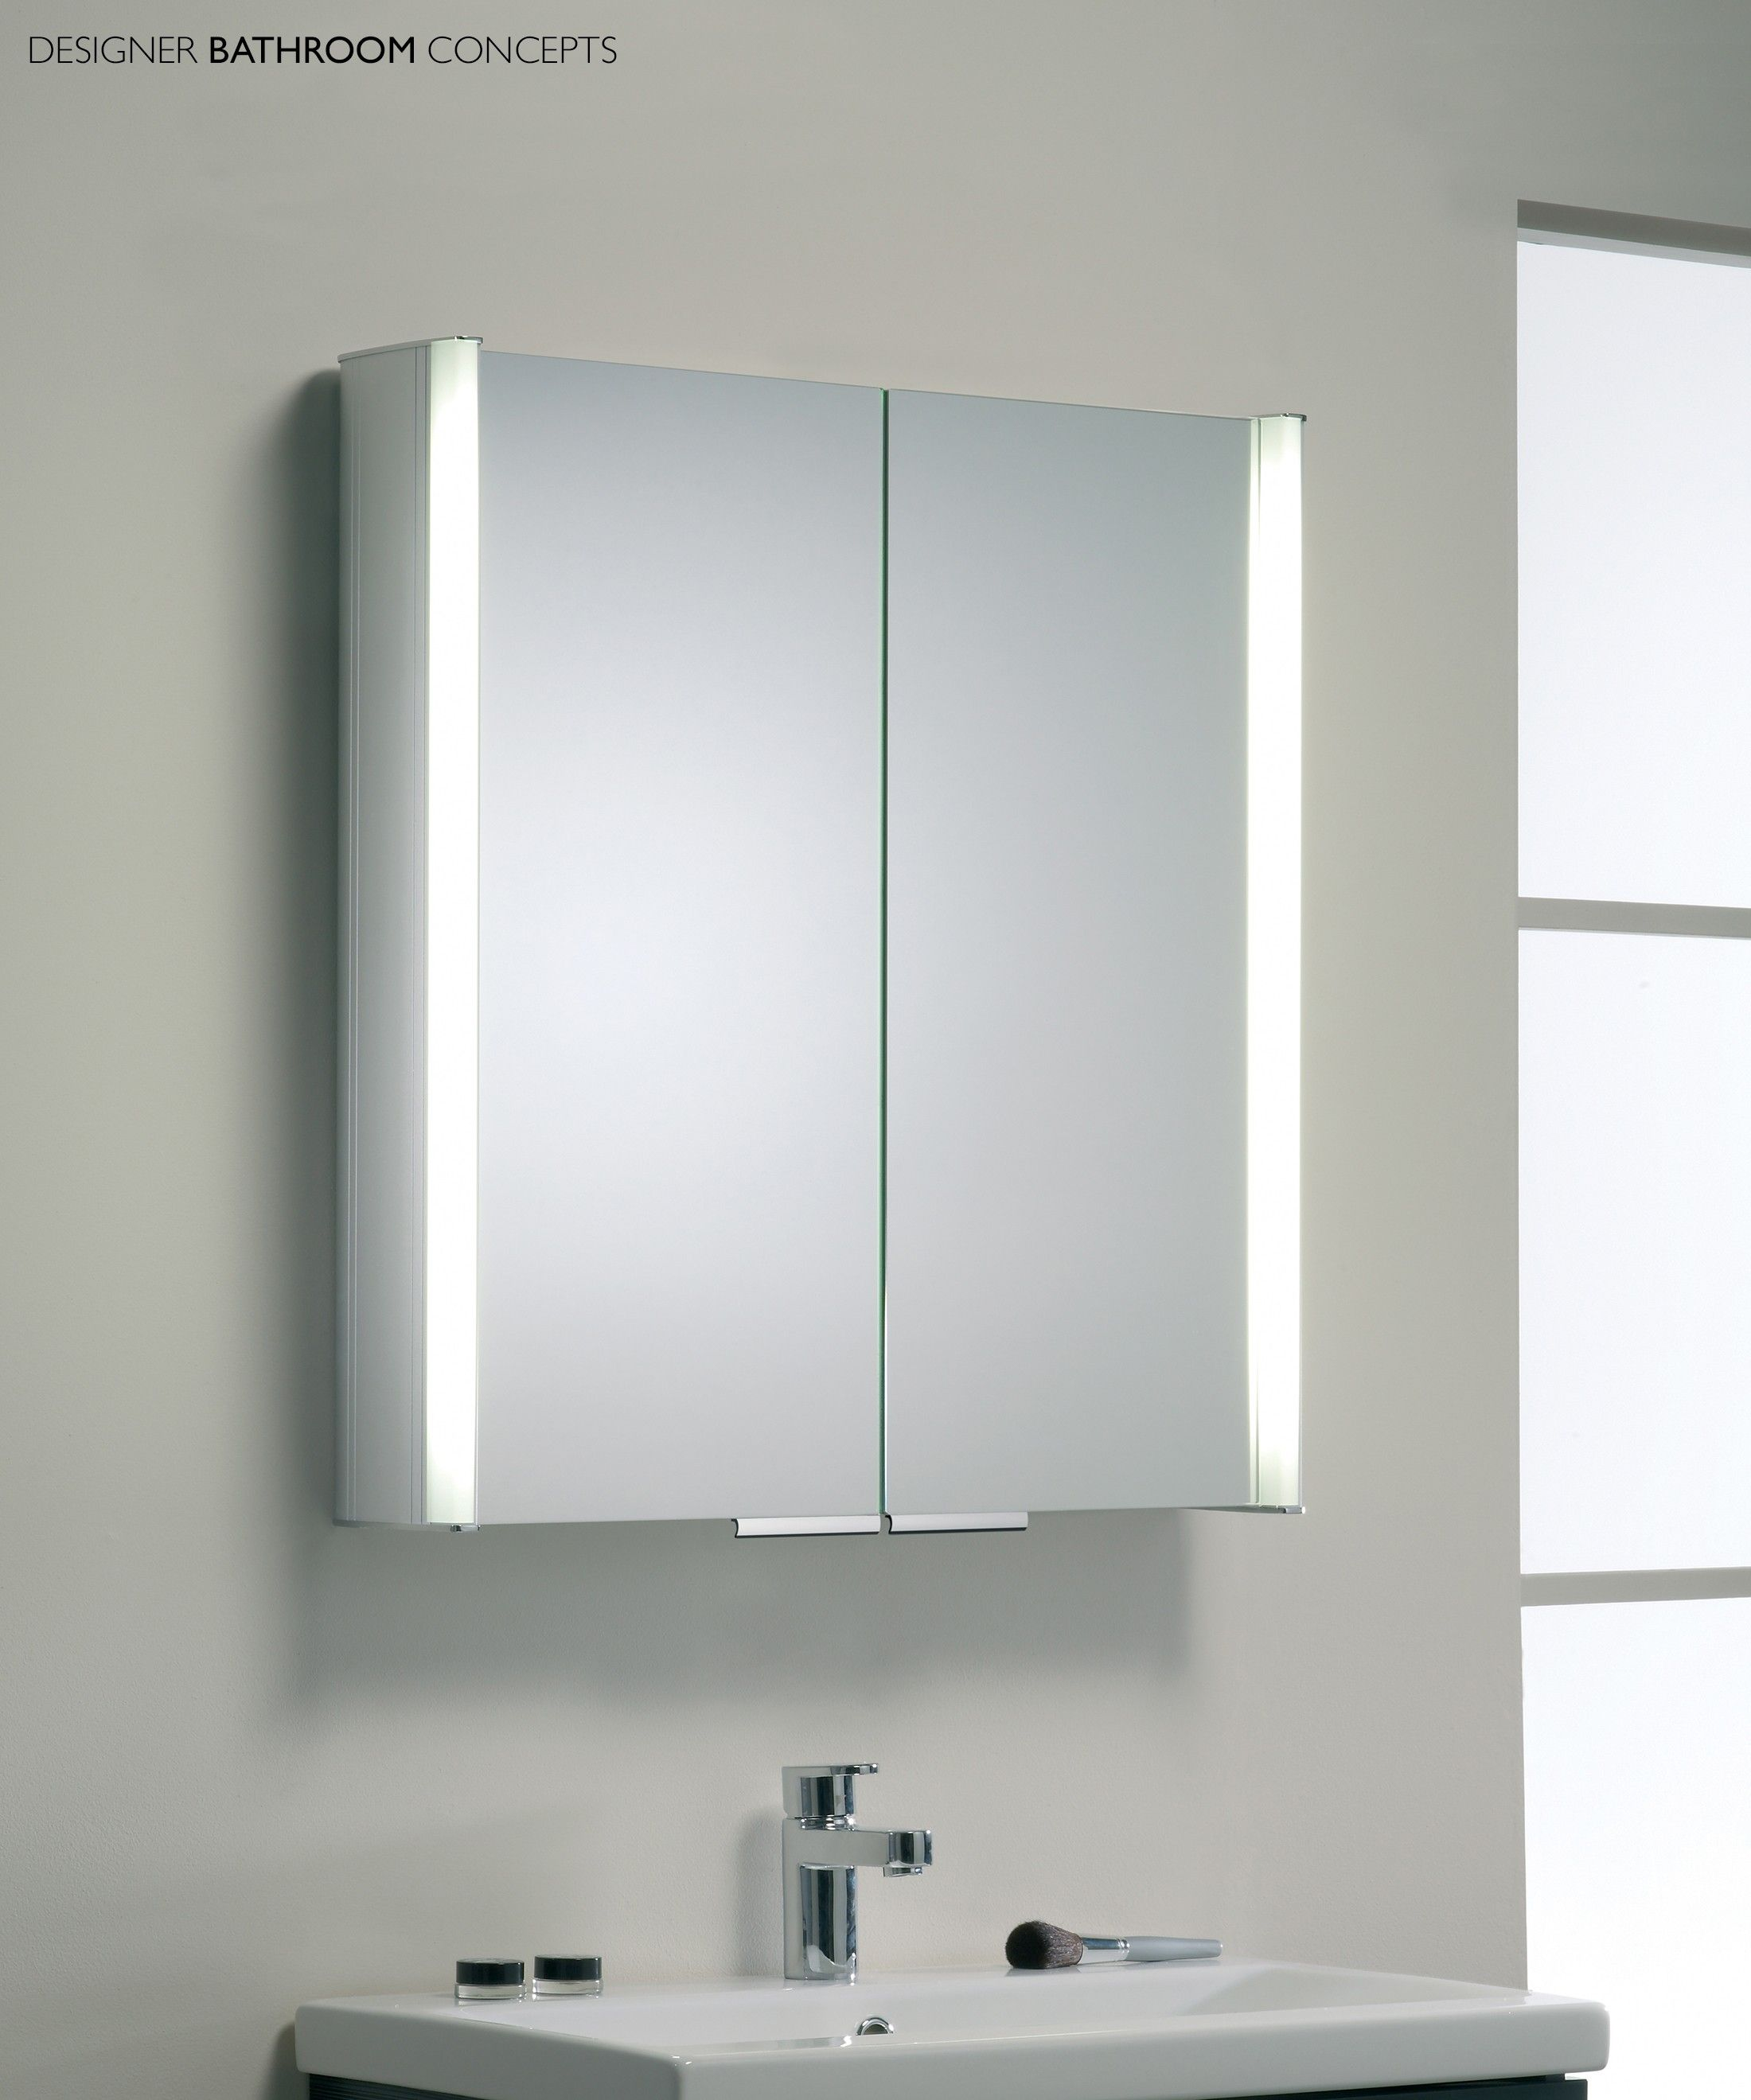 replacement kohler cabinet article mirror space medicine ideas cabinets grooming organize your